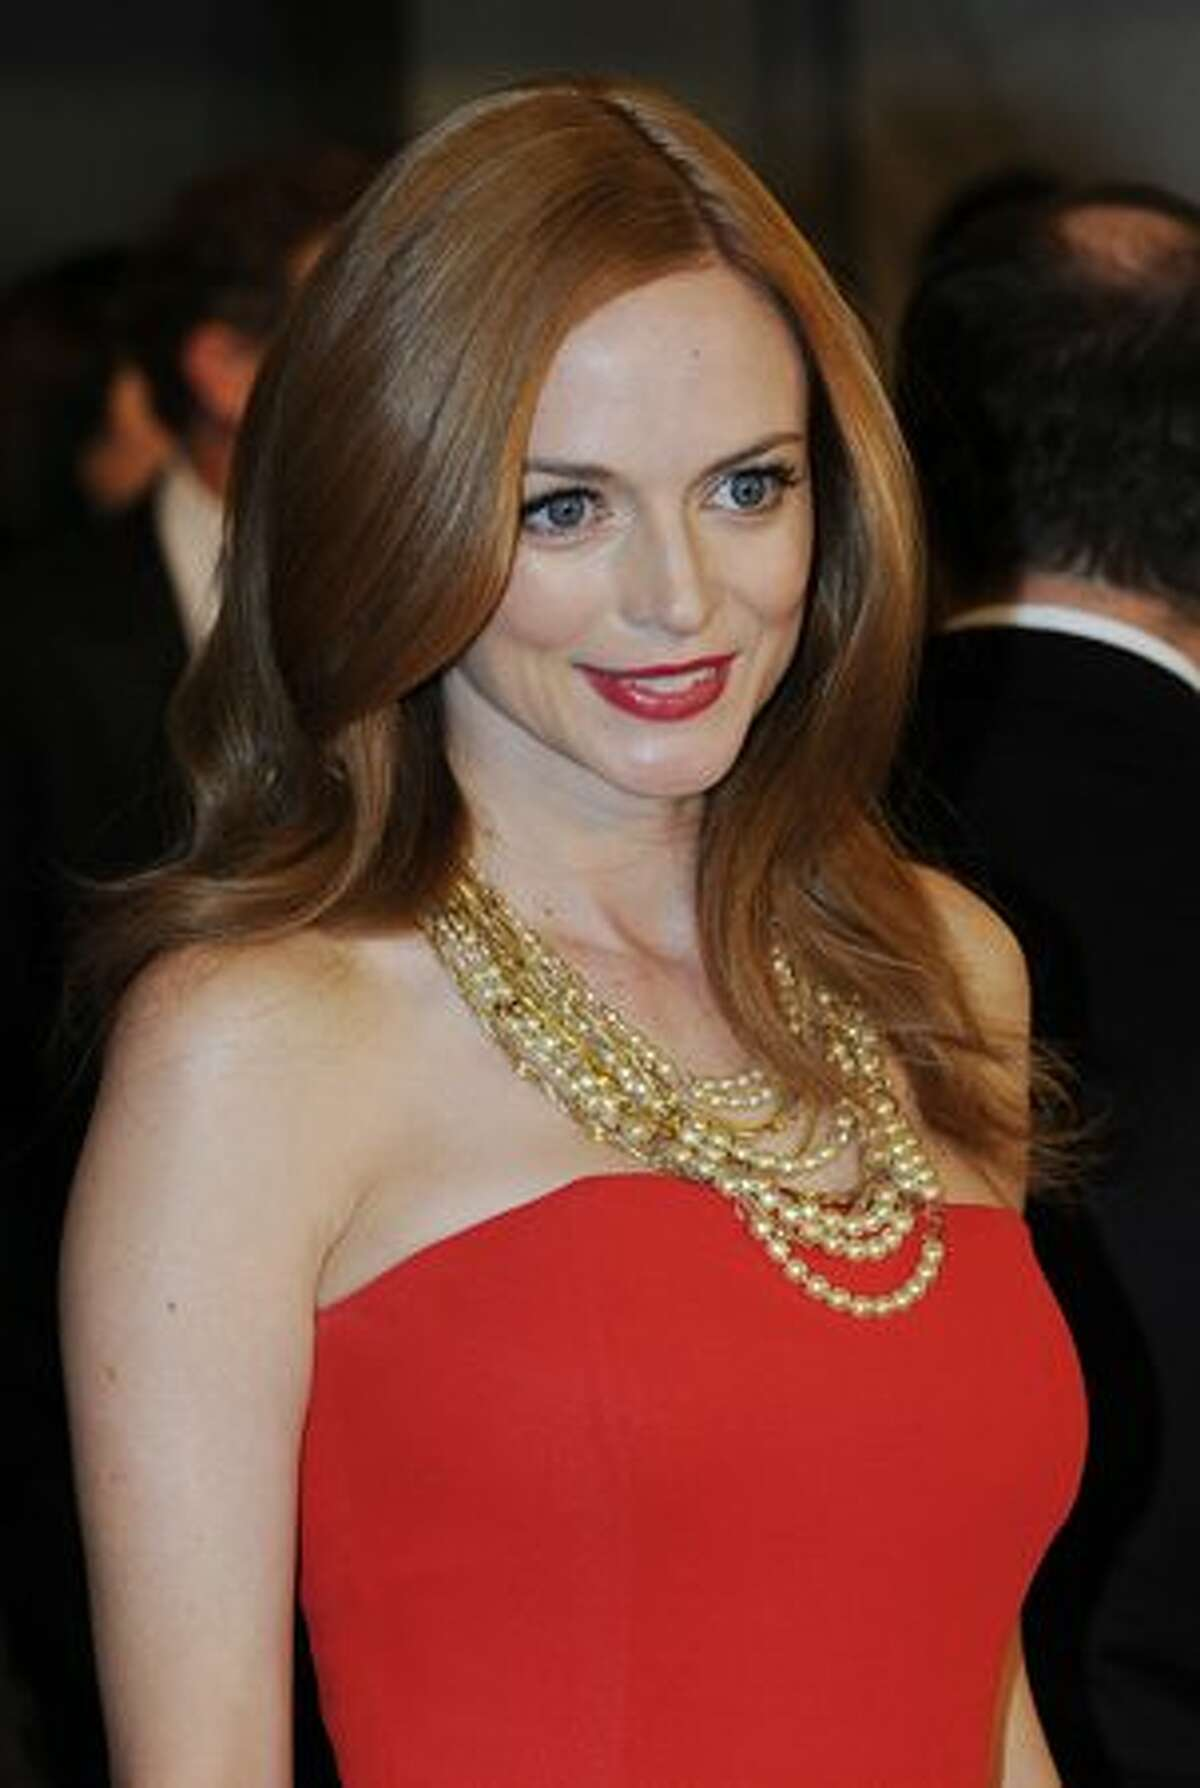 Actress Heather Graham arrives on the red carpet for the 2010 Oscars Governors Ball.